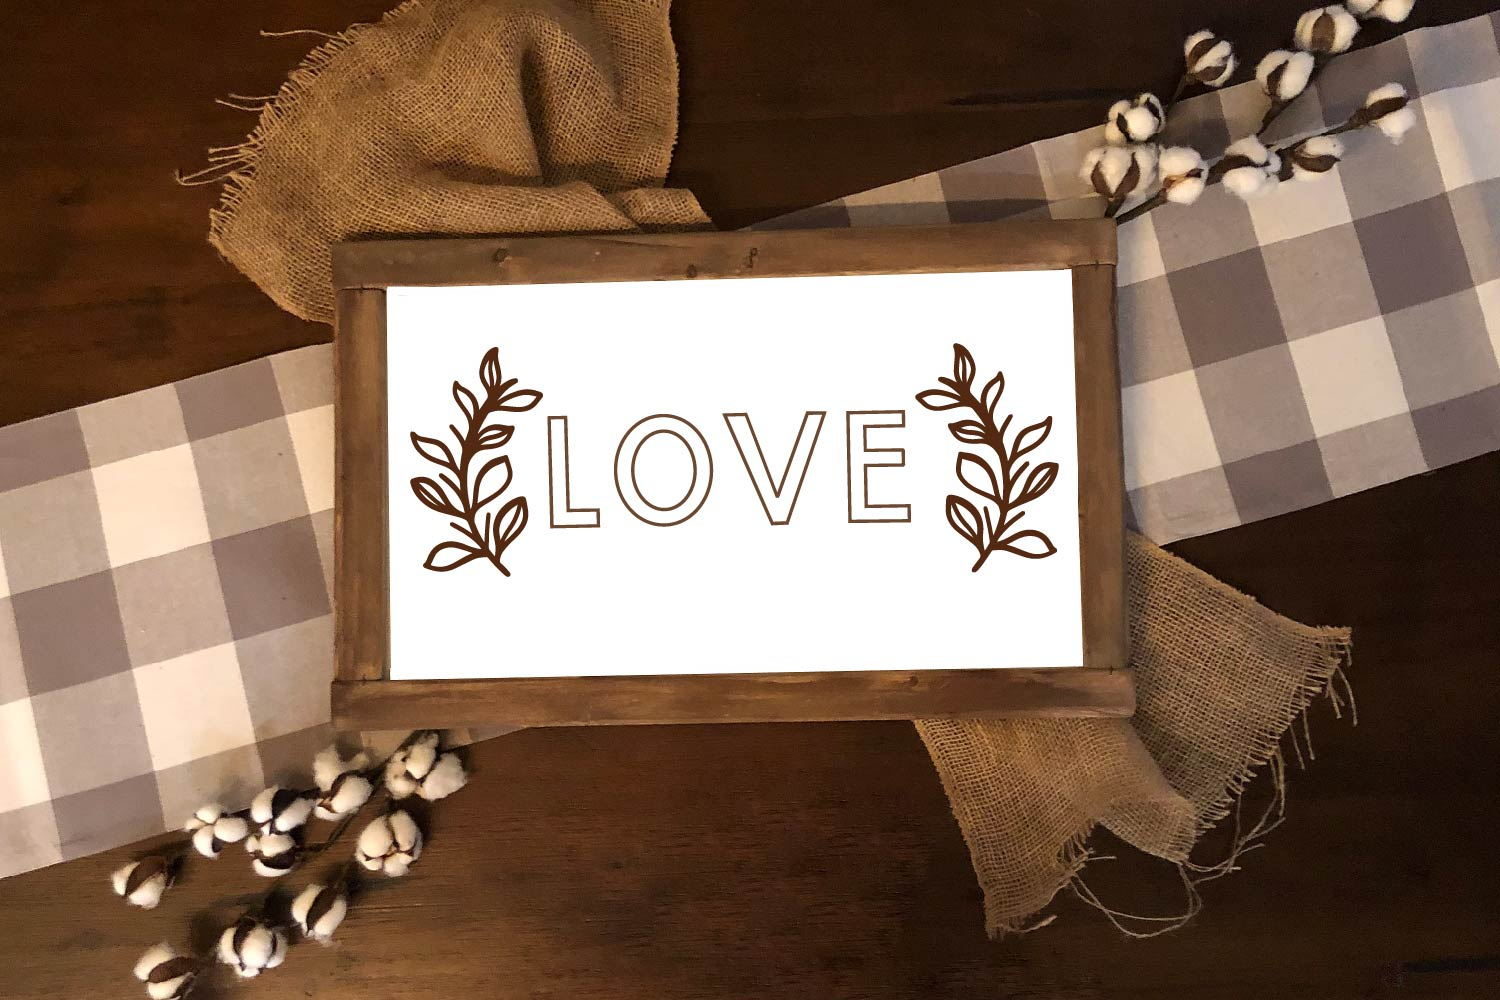 Sign Doodles - A Dingbat Font - Great For Farmhouse Signs! example image 5